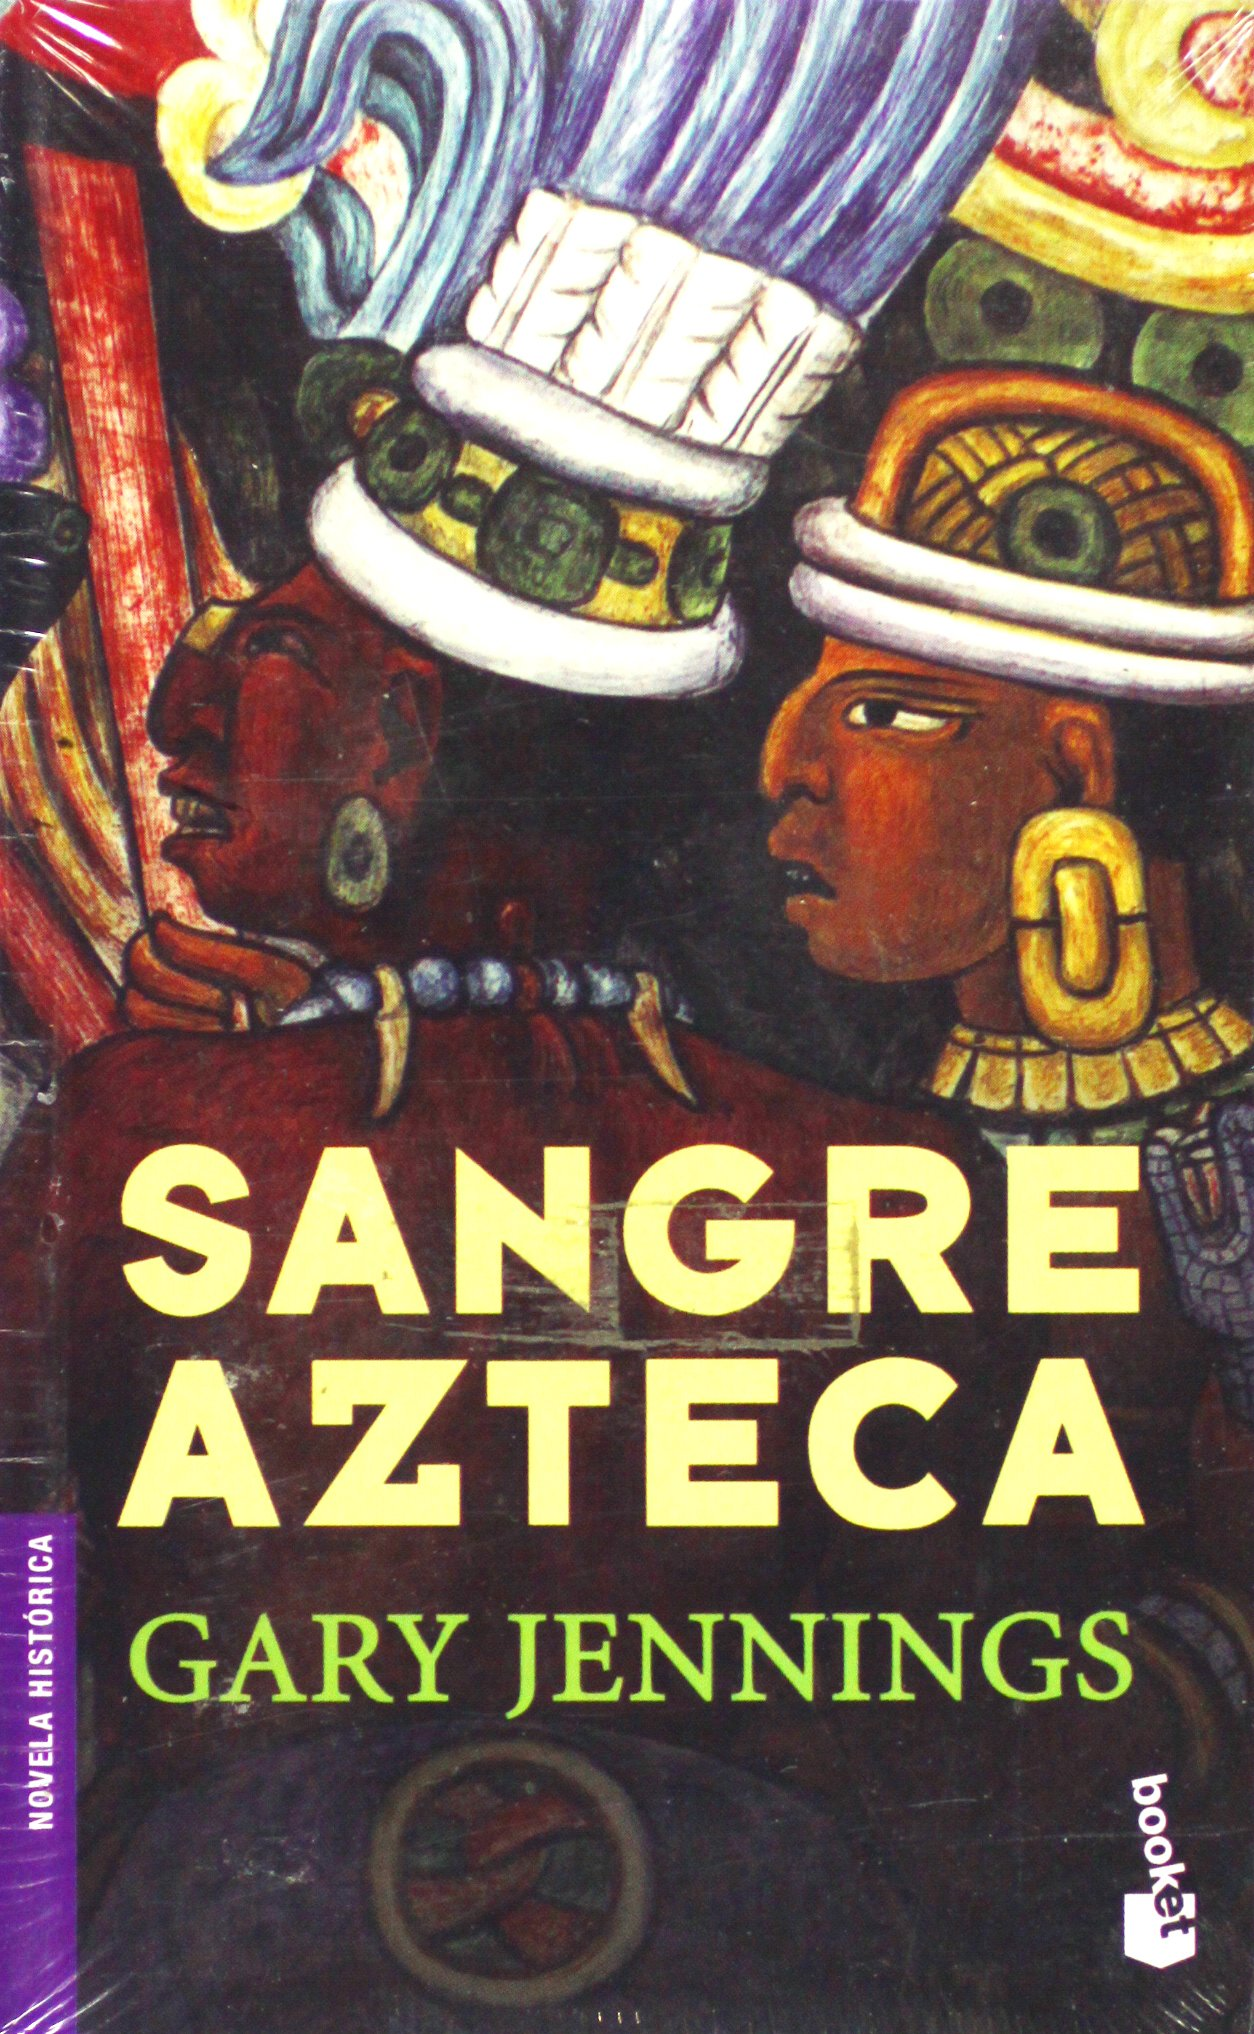 Sangre Azteca/ Aztec Blood (Spanish Edition): Gary Jennings: 9788408051275: Amazon.com: Books